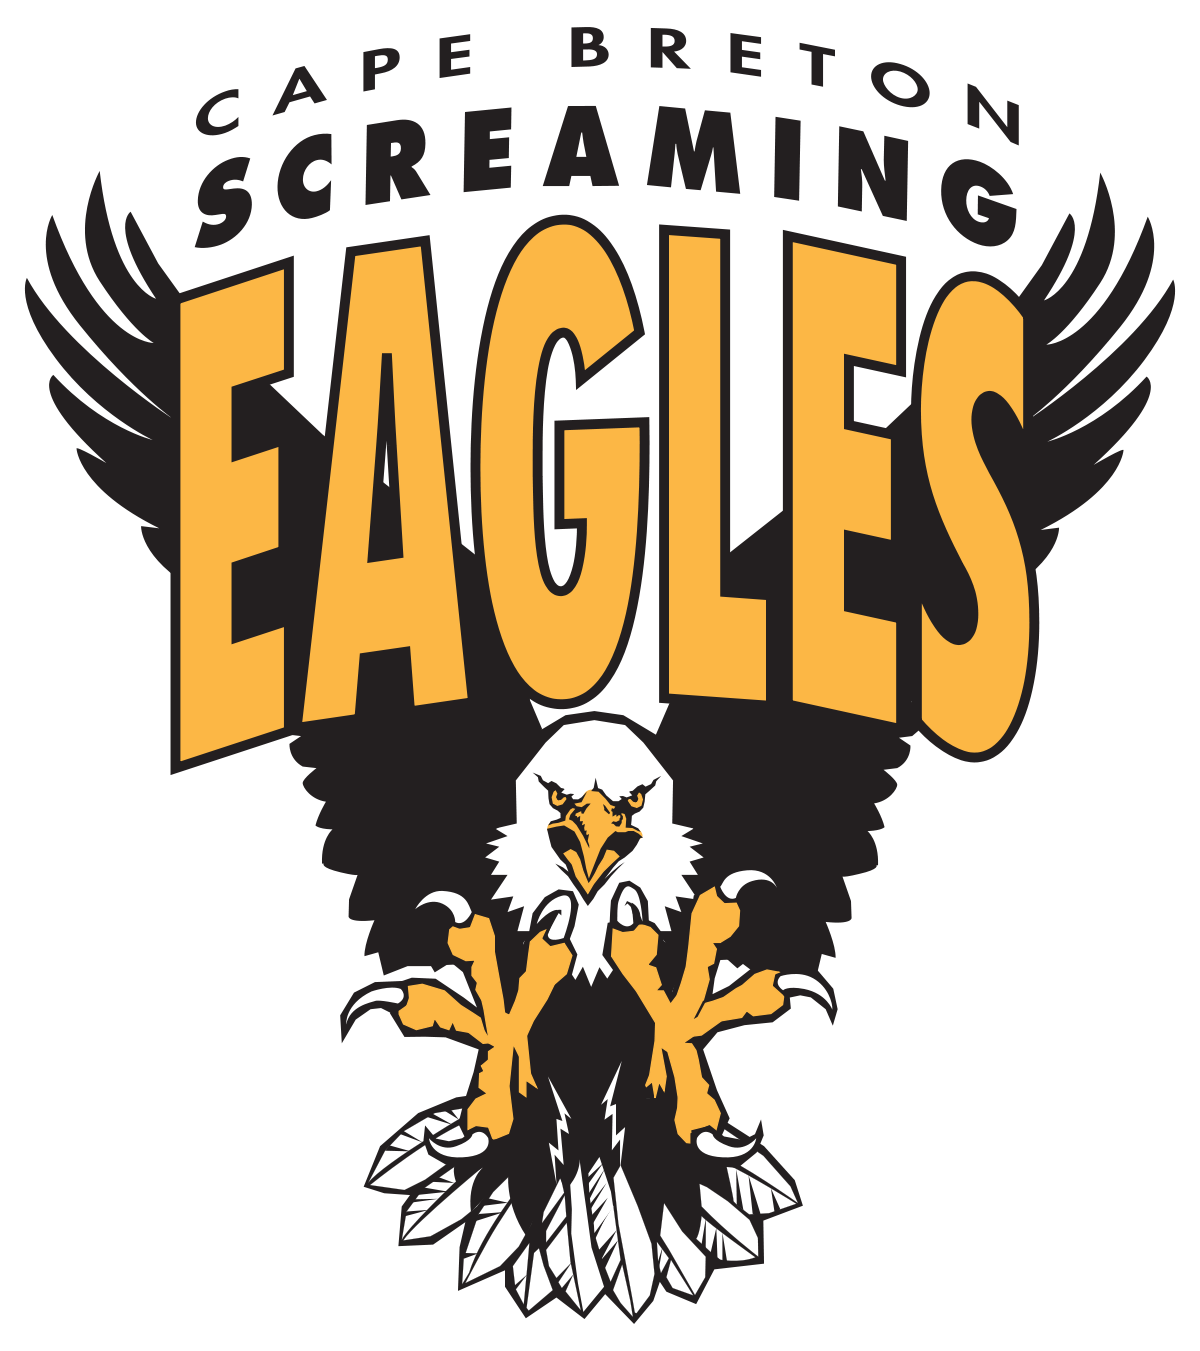 Screaming baseball vector clipart clip art library download Cape Breton Screaming Eagles - Wikipedia clip art library download